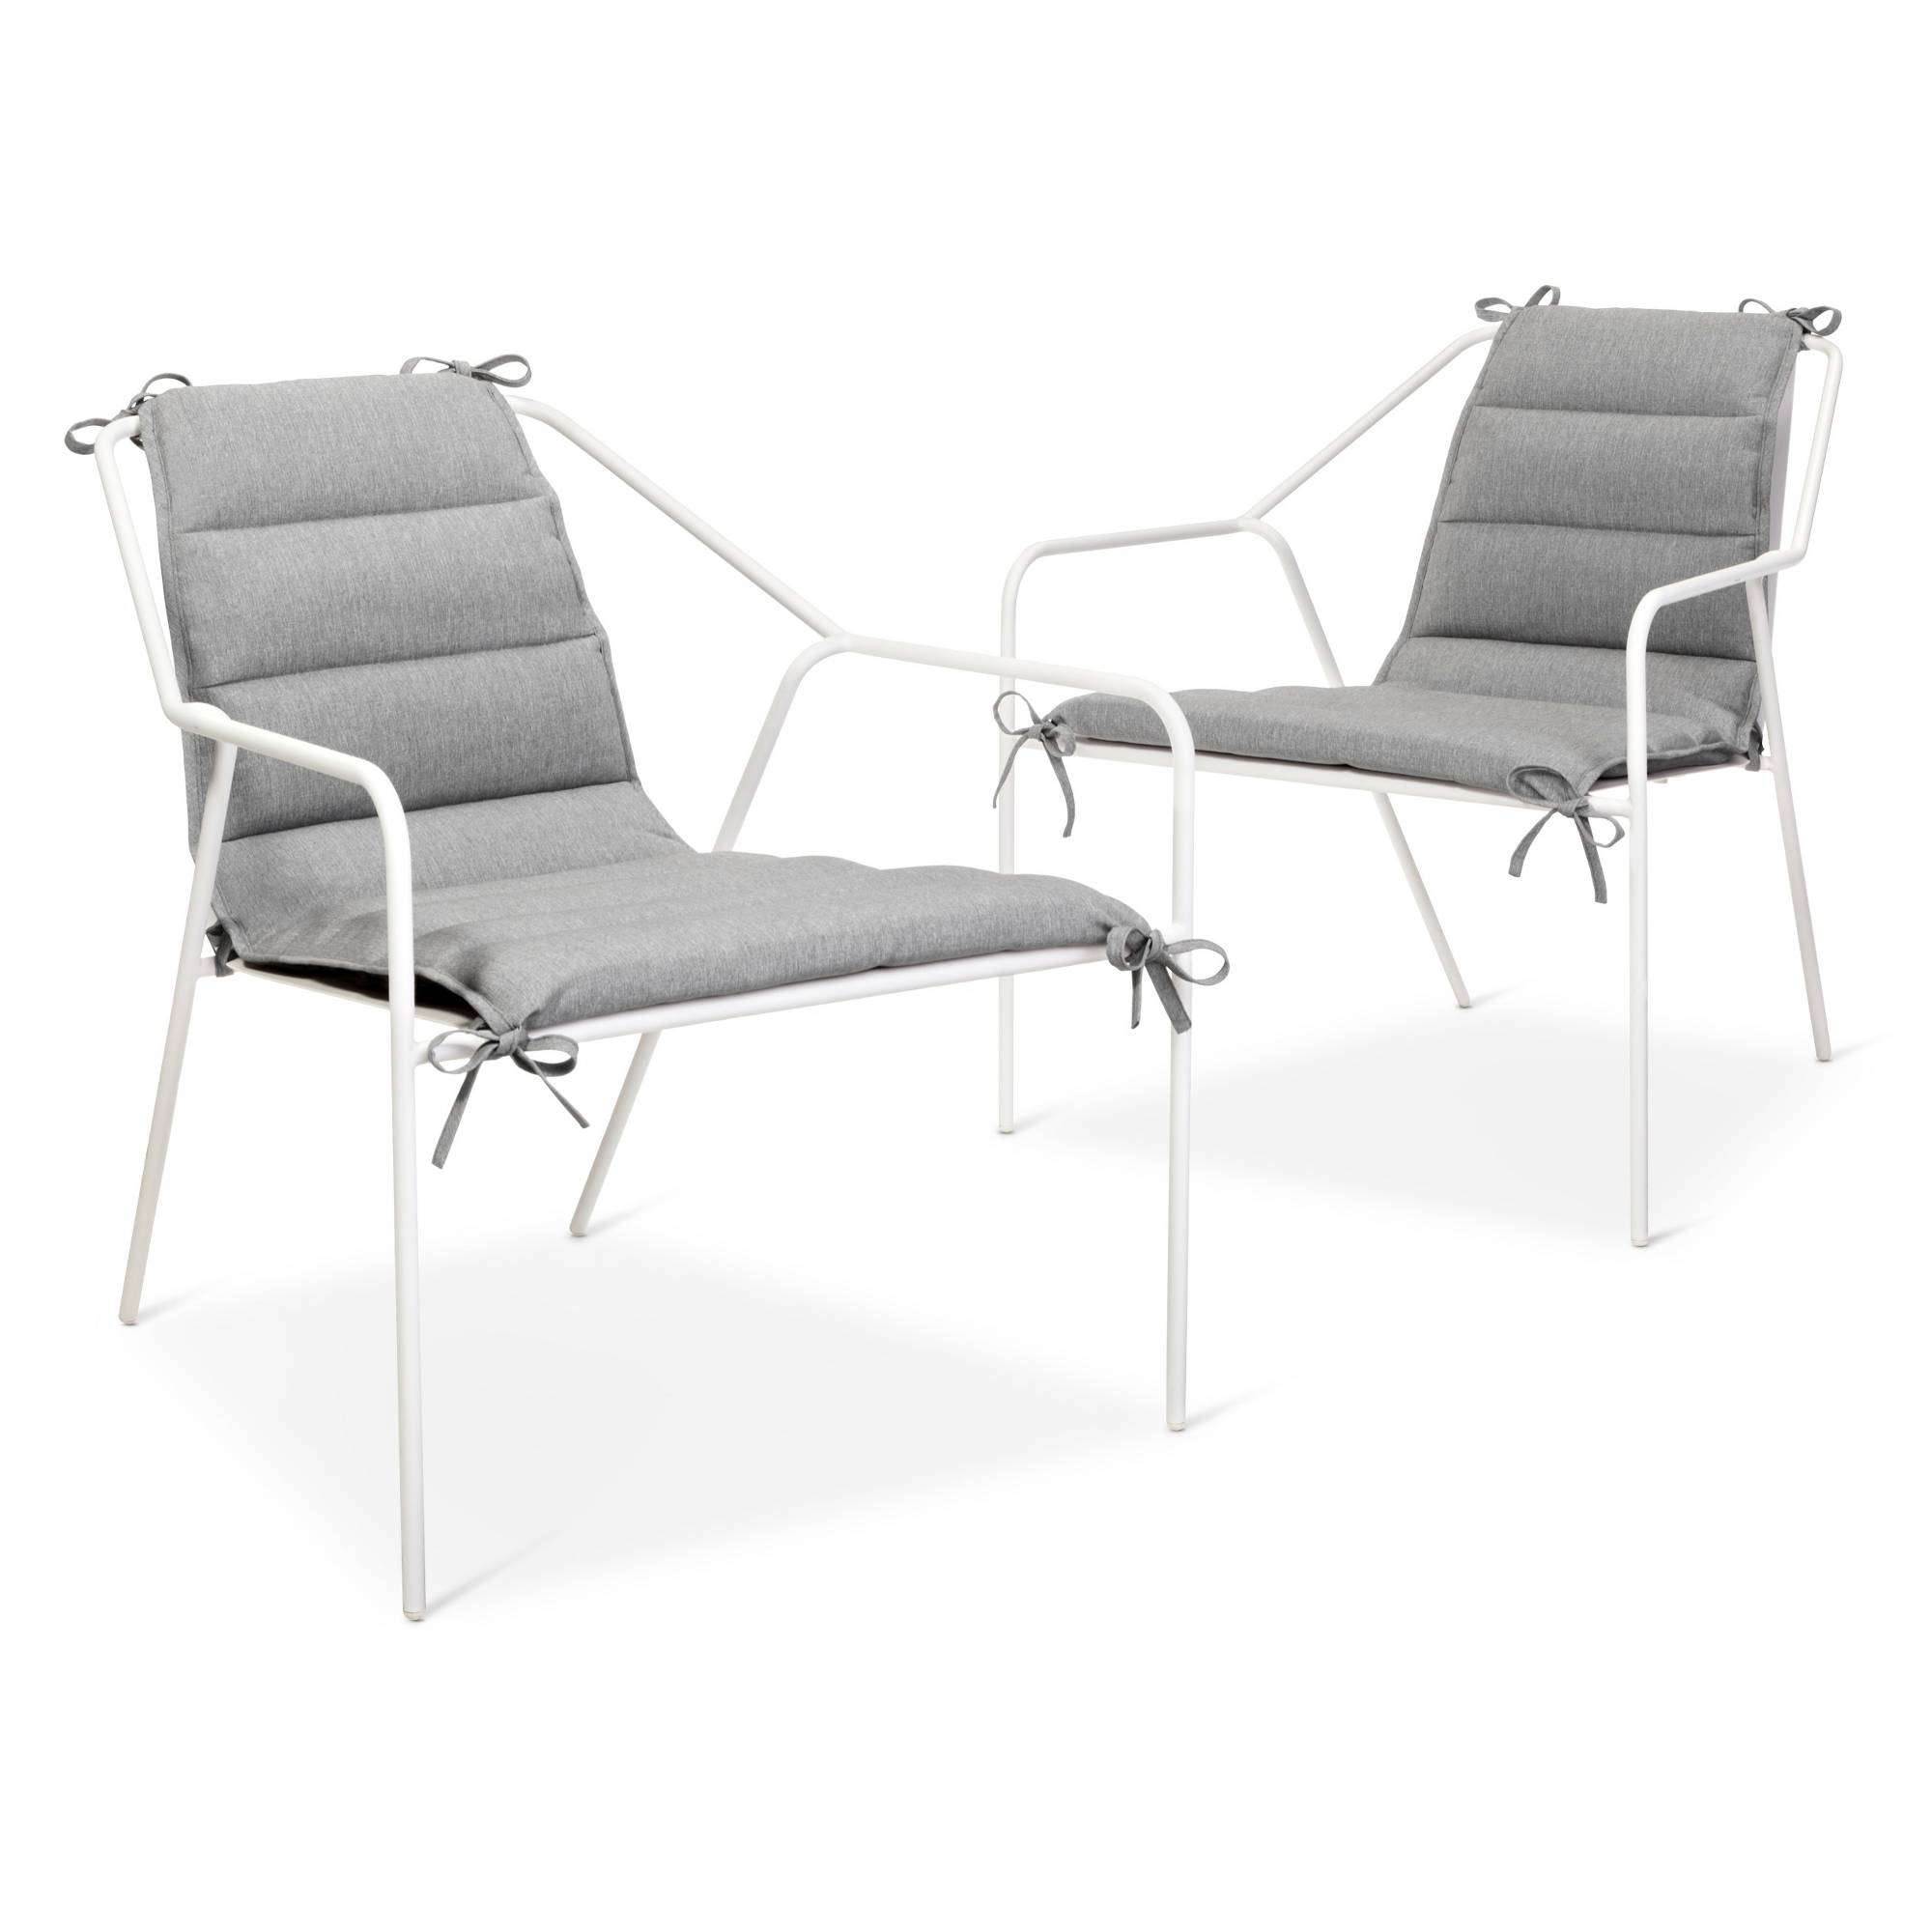 Posture Chair with cushions by Modern by Dwell Magazine